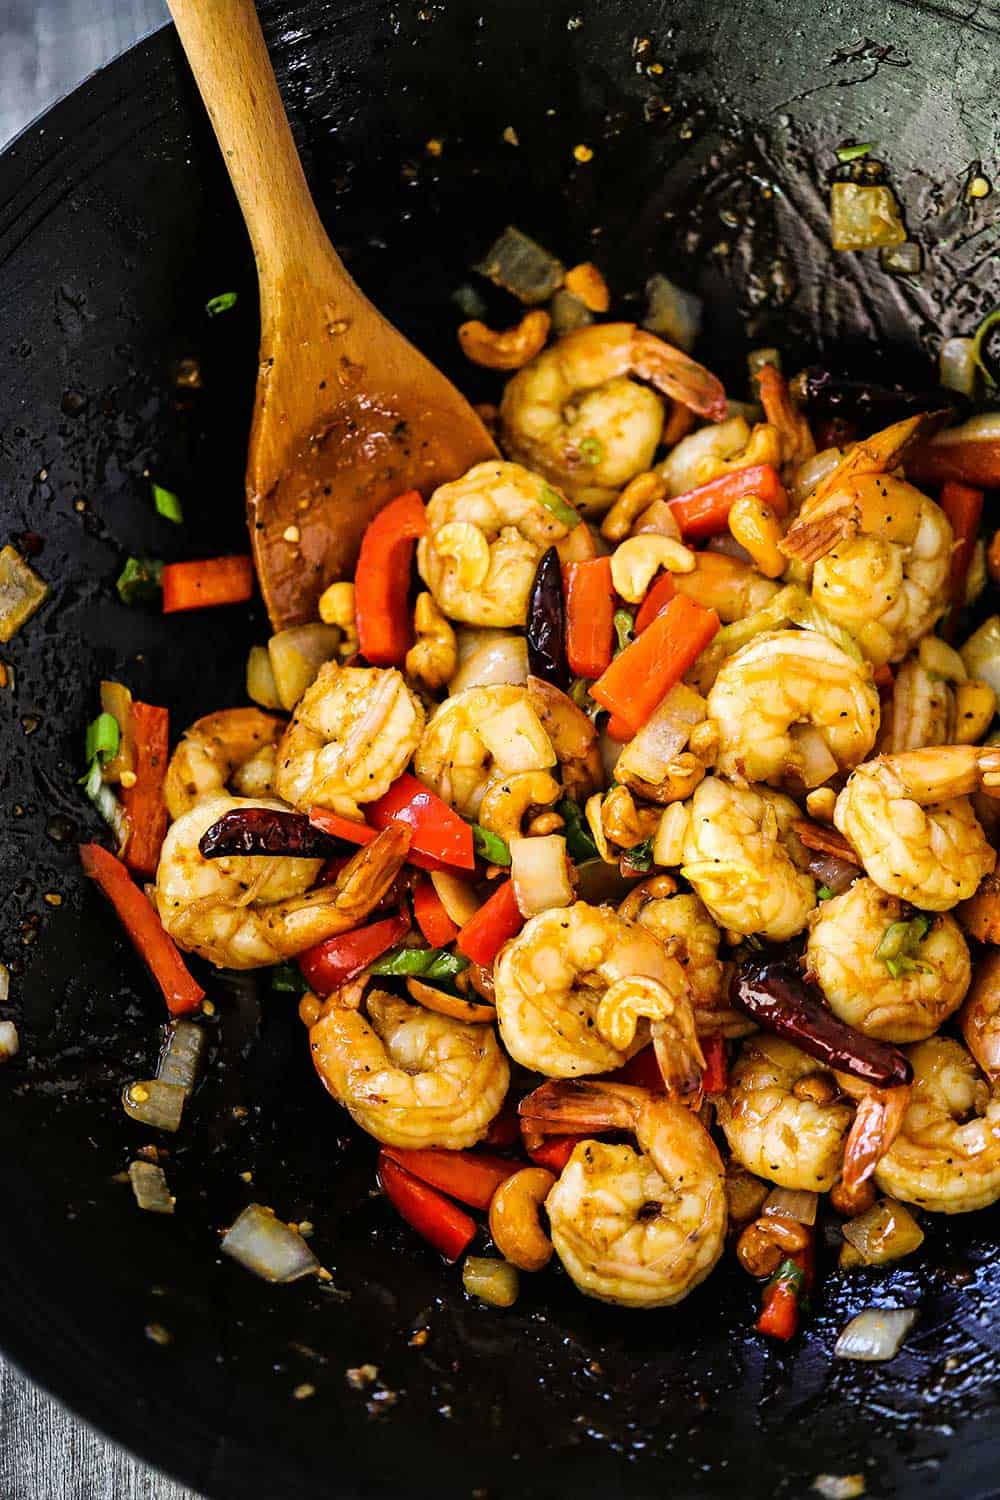 A wok filled with fully cooked Kung Pao Shrimp and a wooden spoon inserted in the middle of it all.